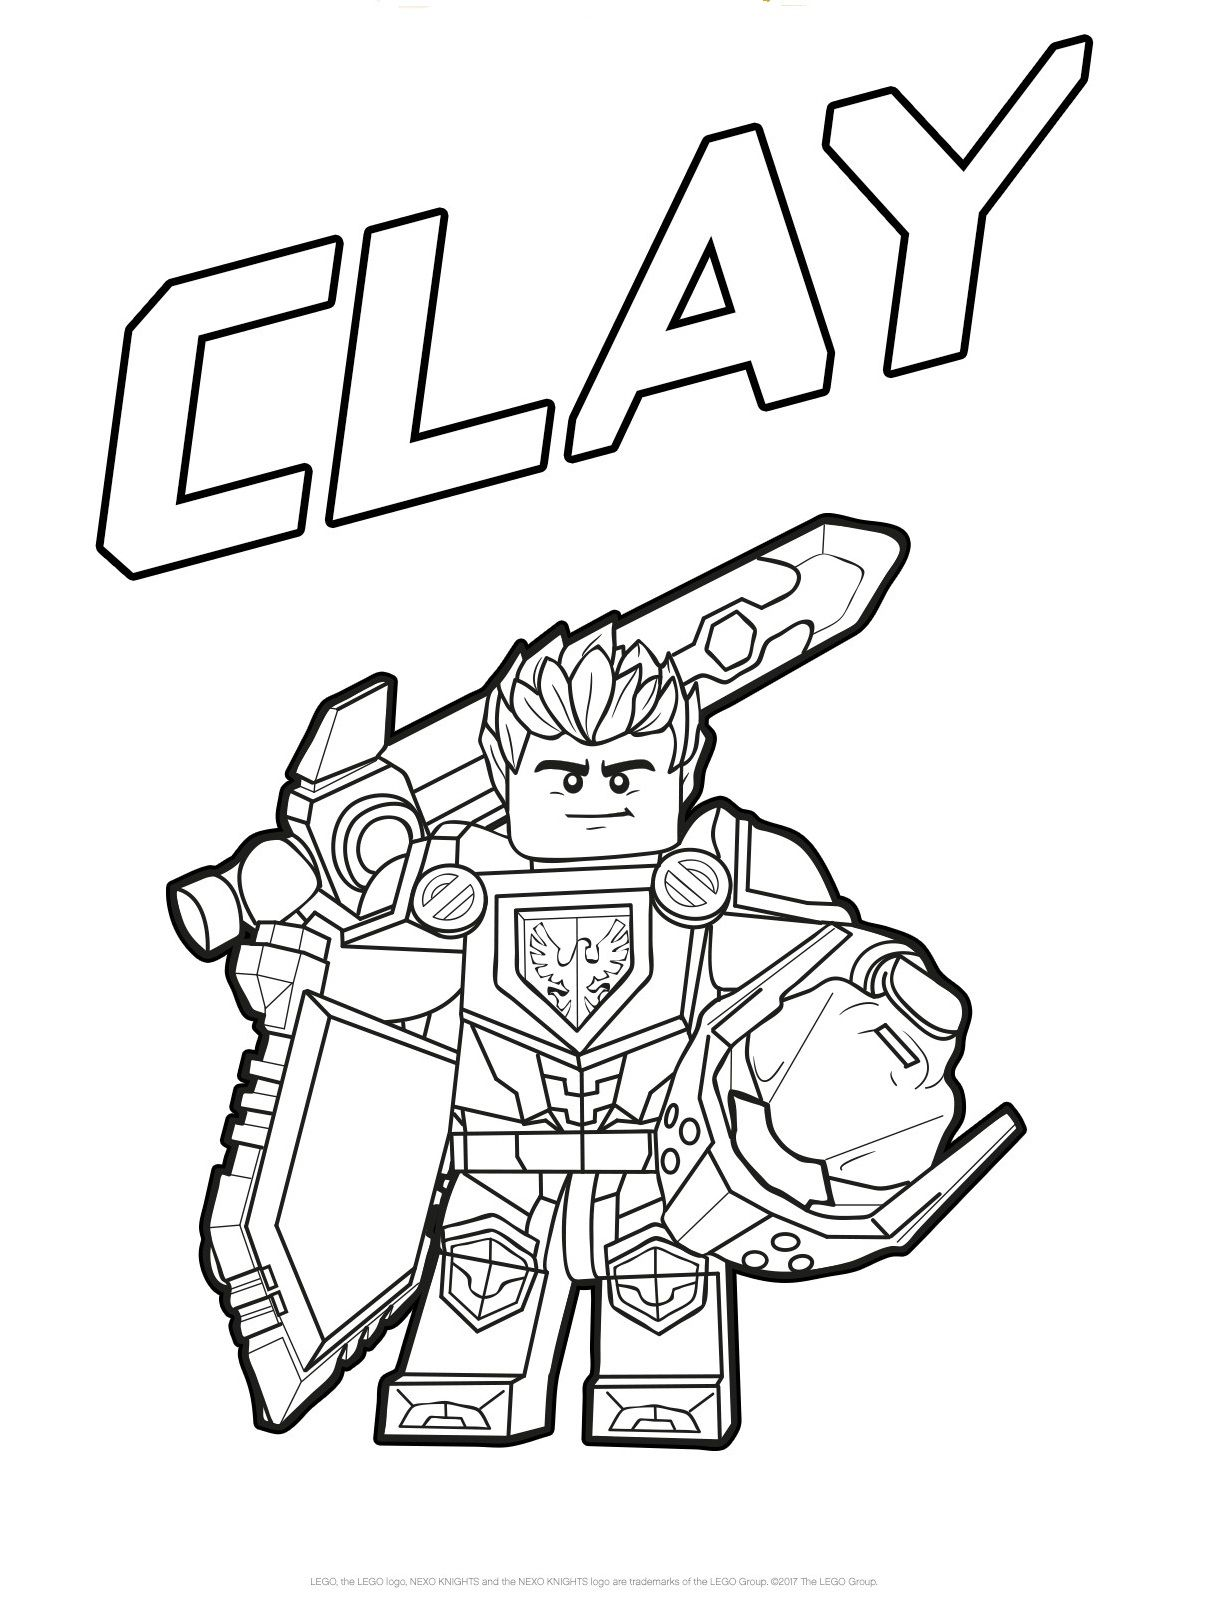 Nexo Knights Clay Coloring Pages Lego Coloring Pages Coloring Pages Cool Coloring Pages